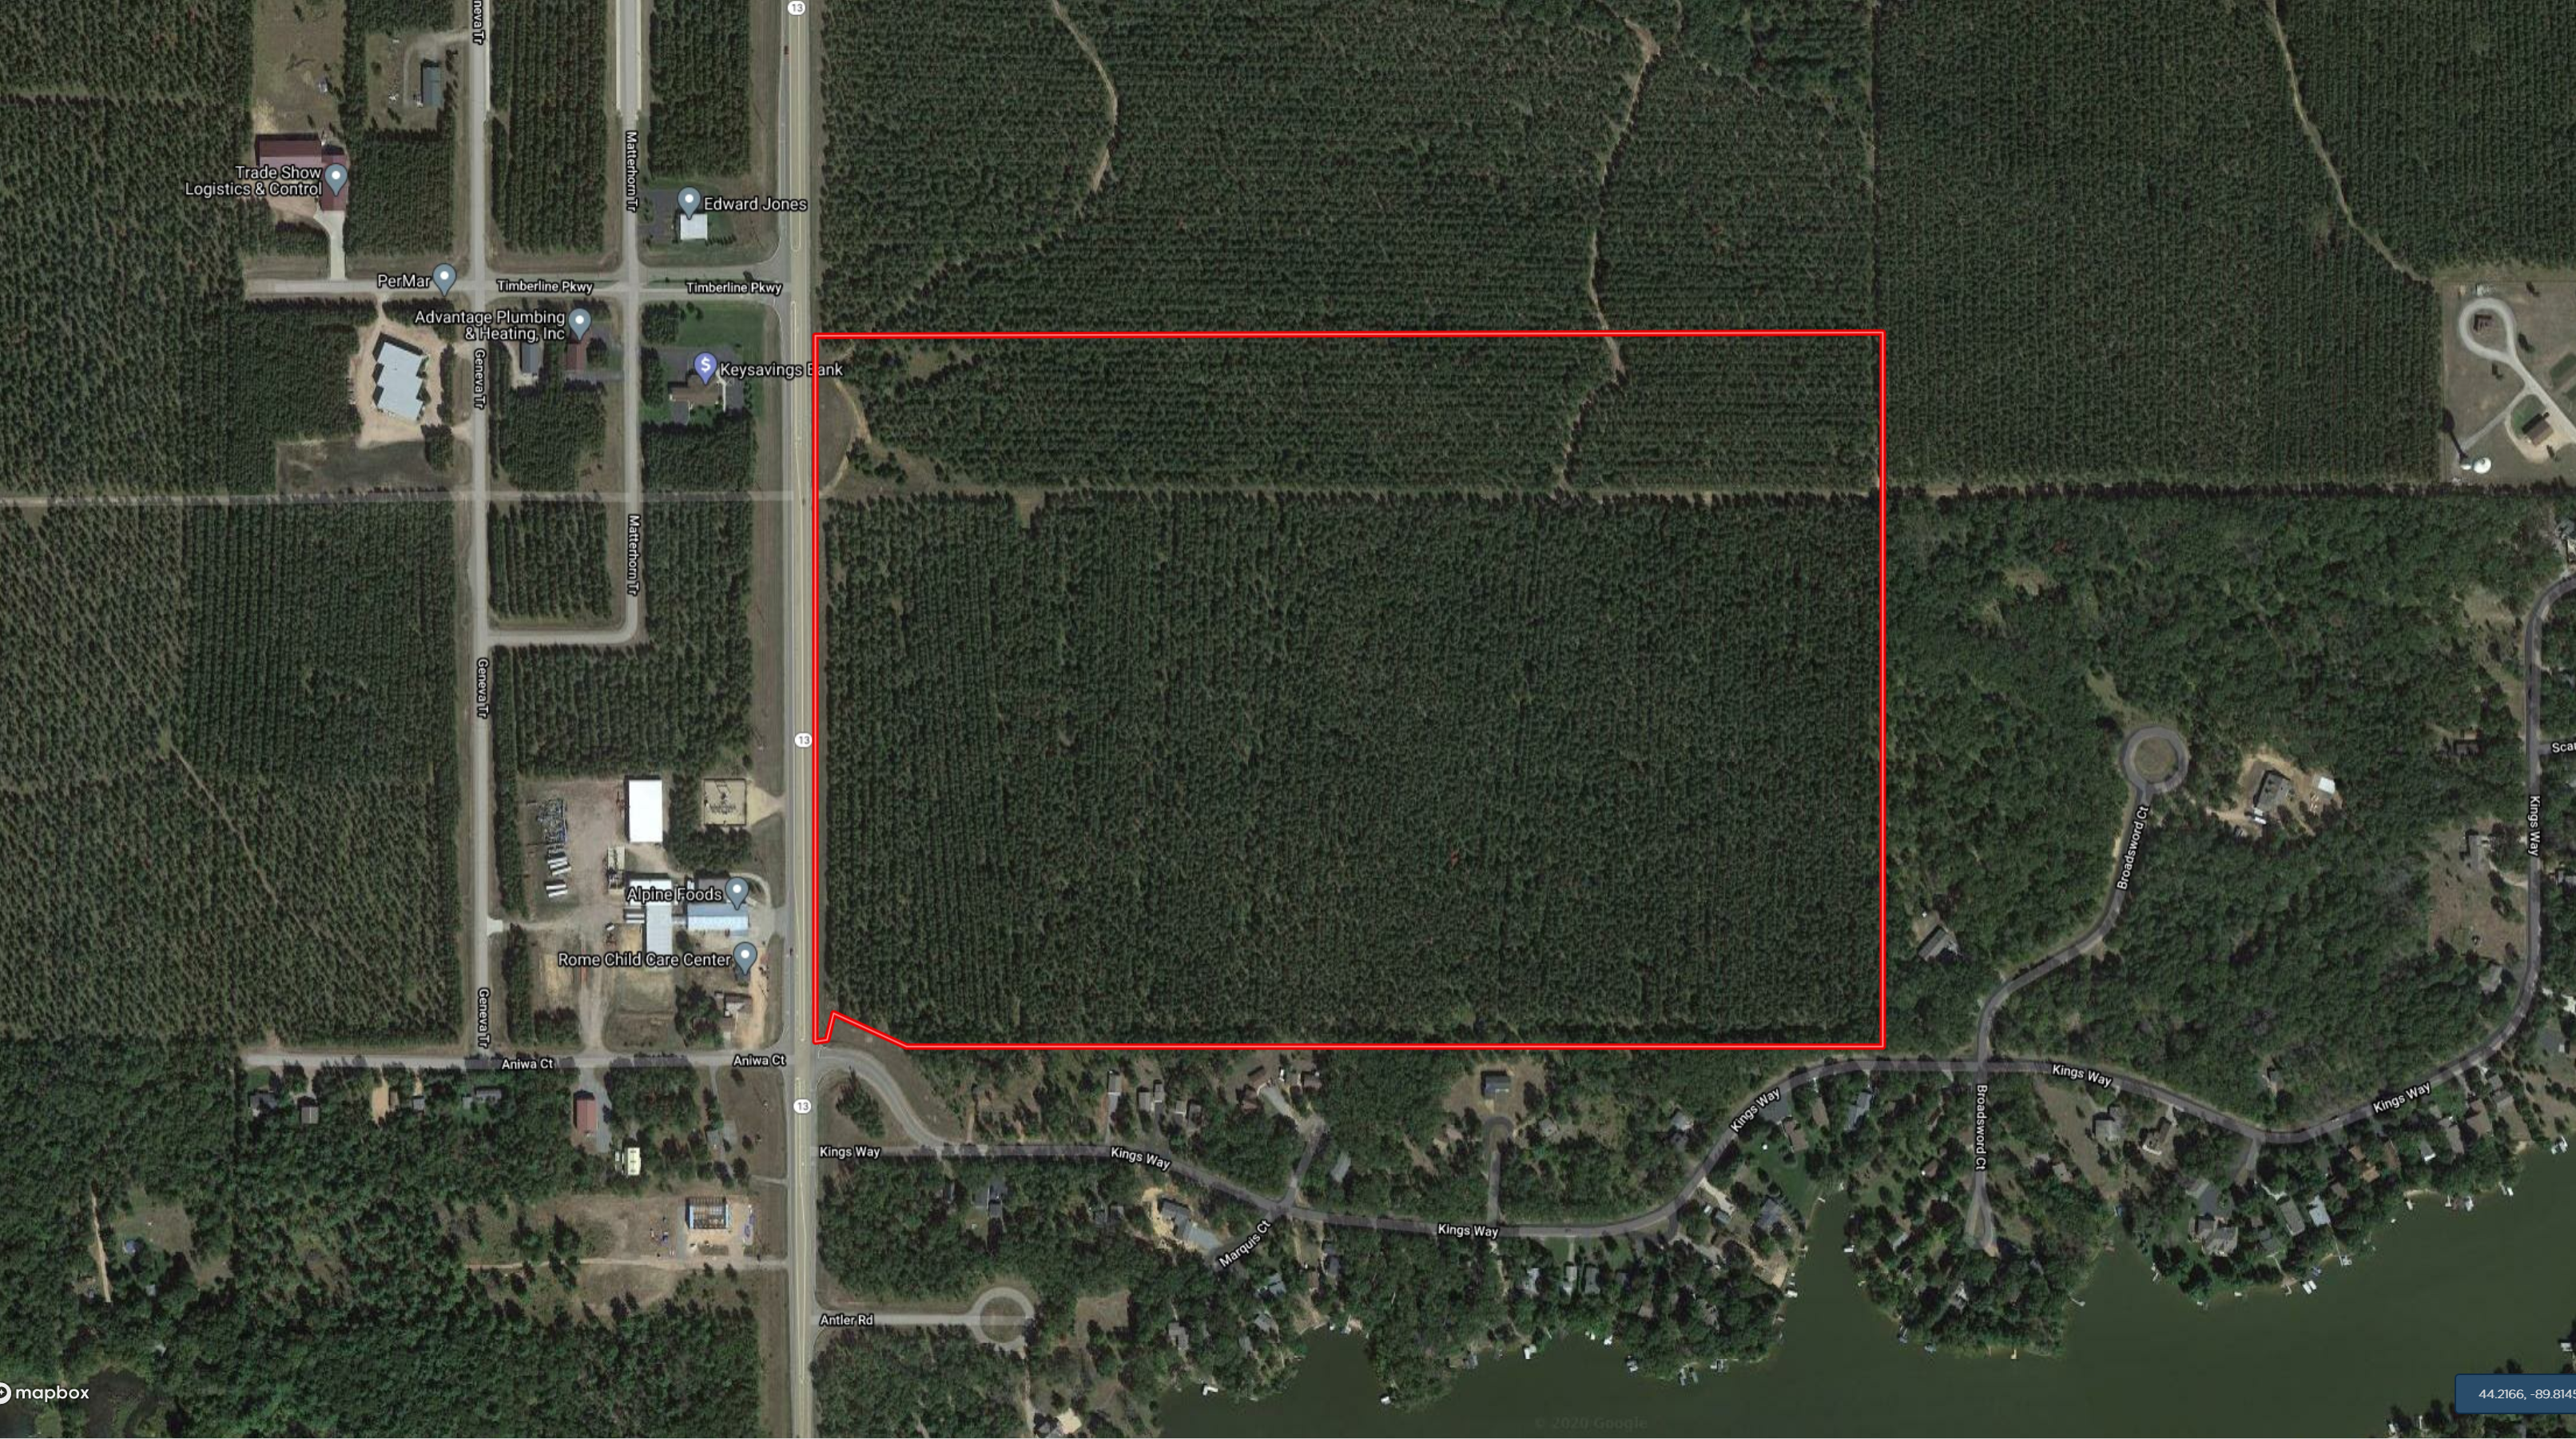 Town of Rome 100 acre timber Tract for sale in Adams County WI